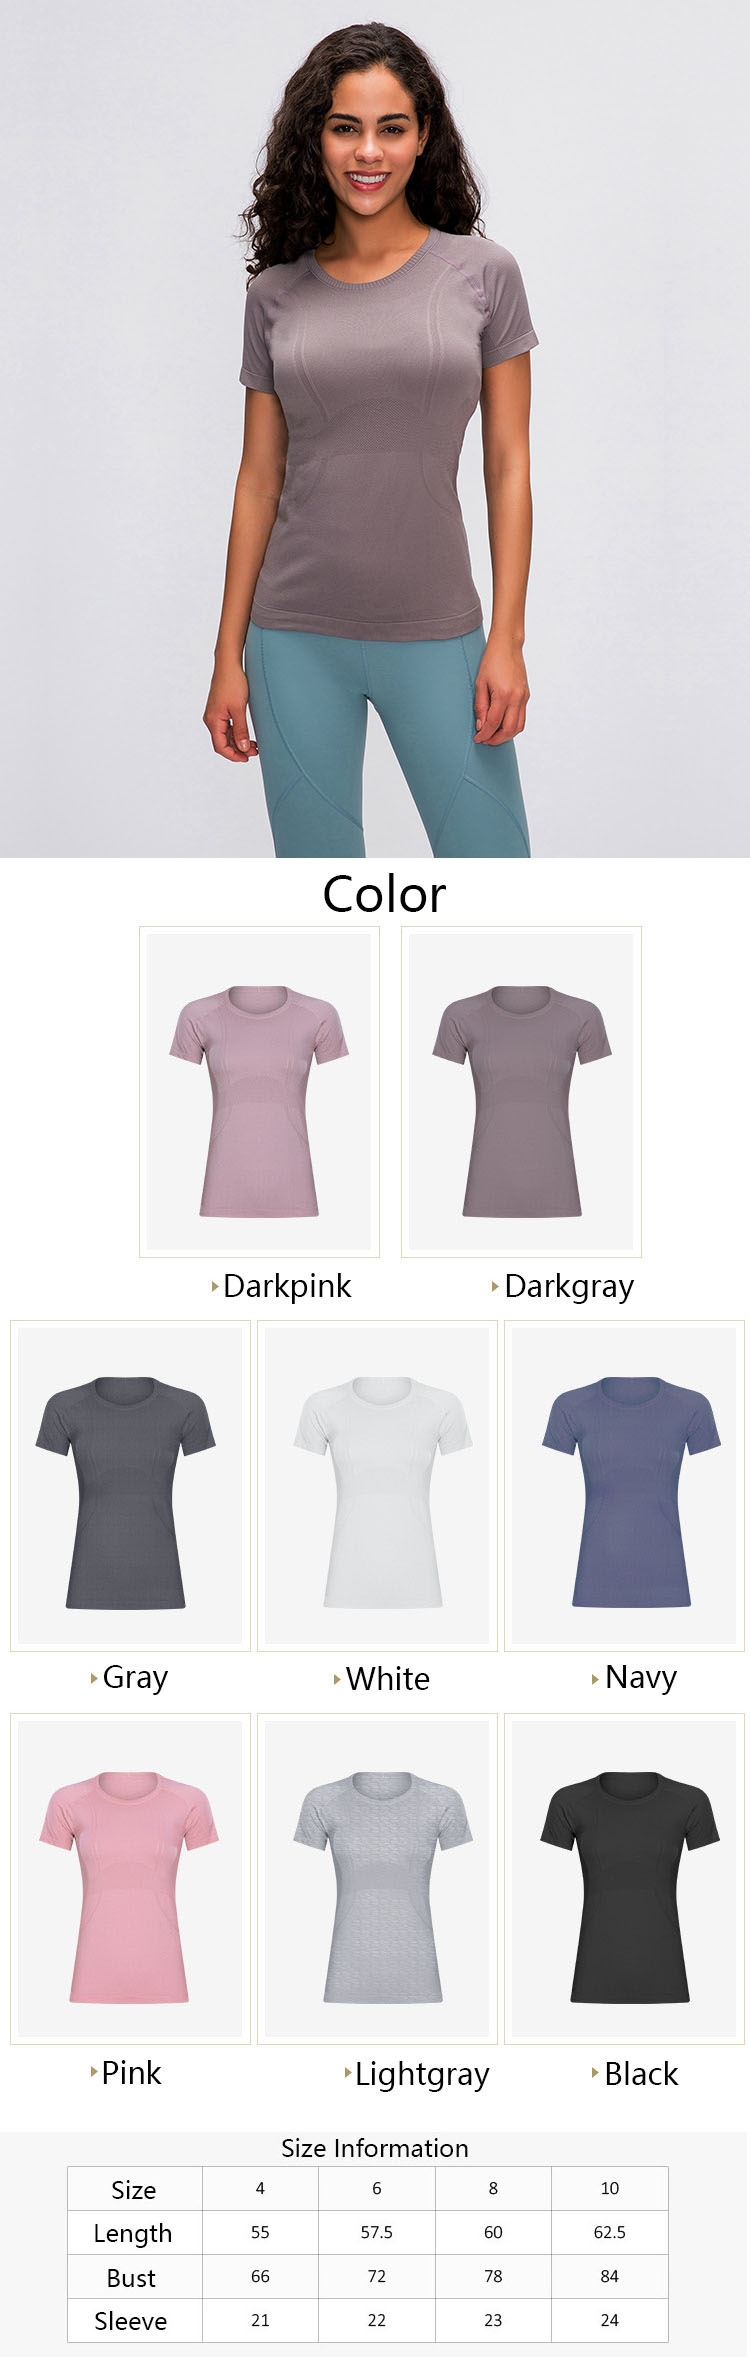 Exercise shirts womens are inseparable from the expression of words